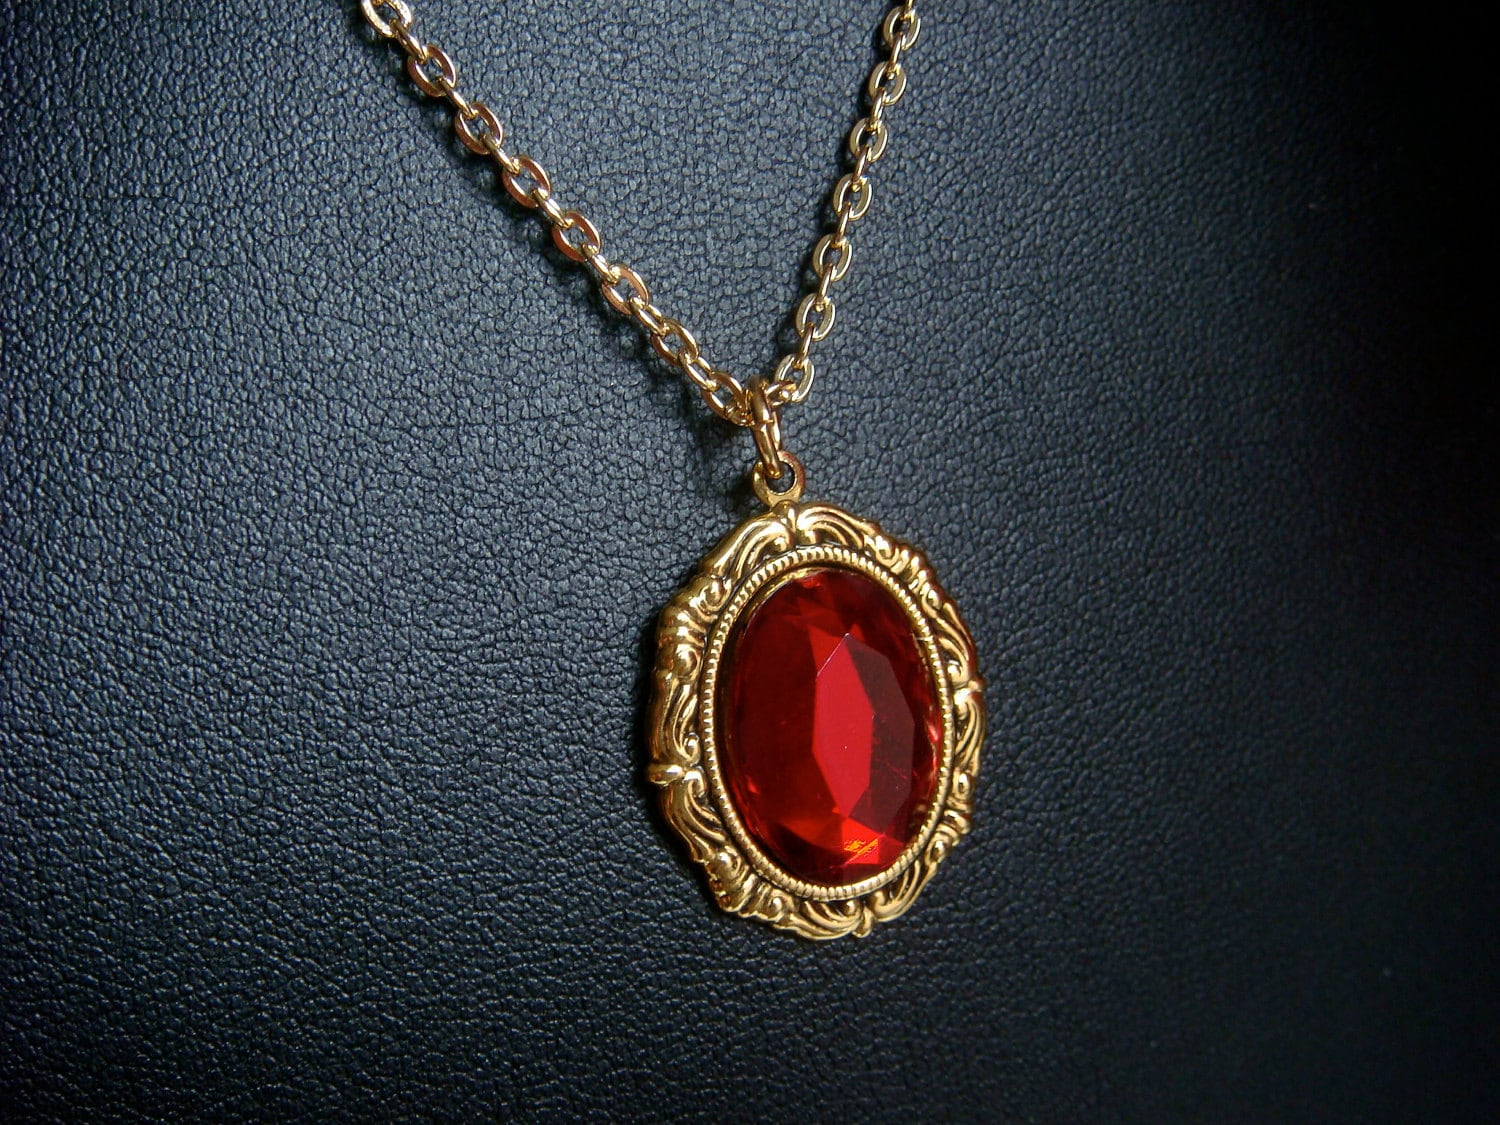 Renaissance Necklace With Red Gem In Gold Gold by LoveMontreal